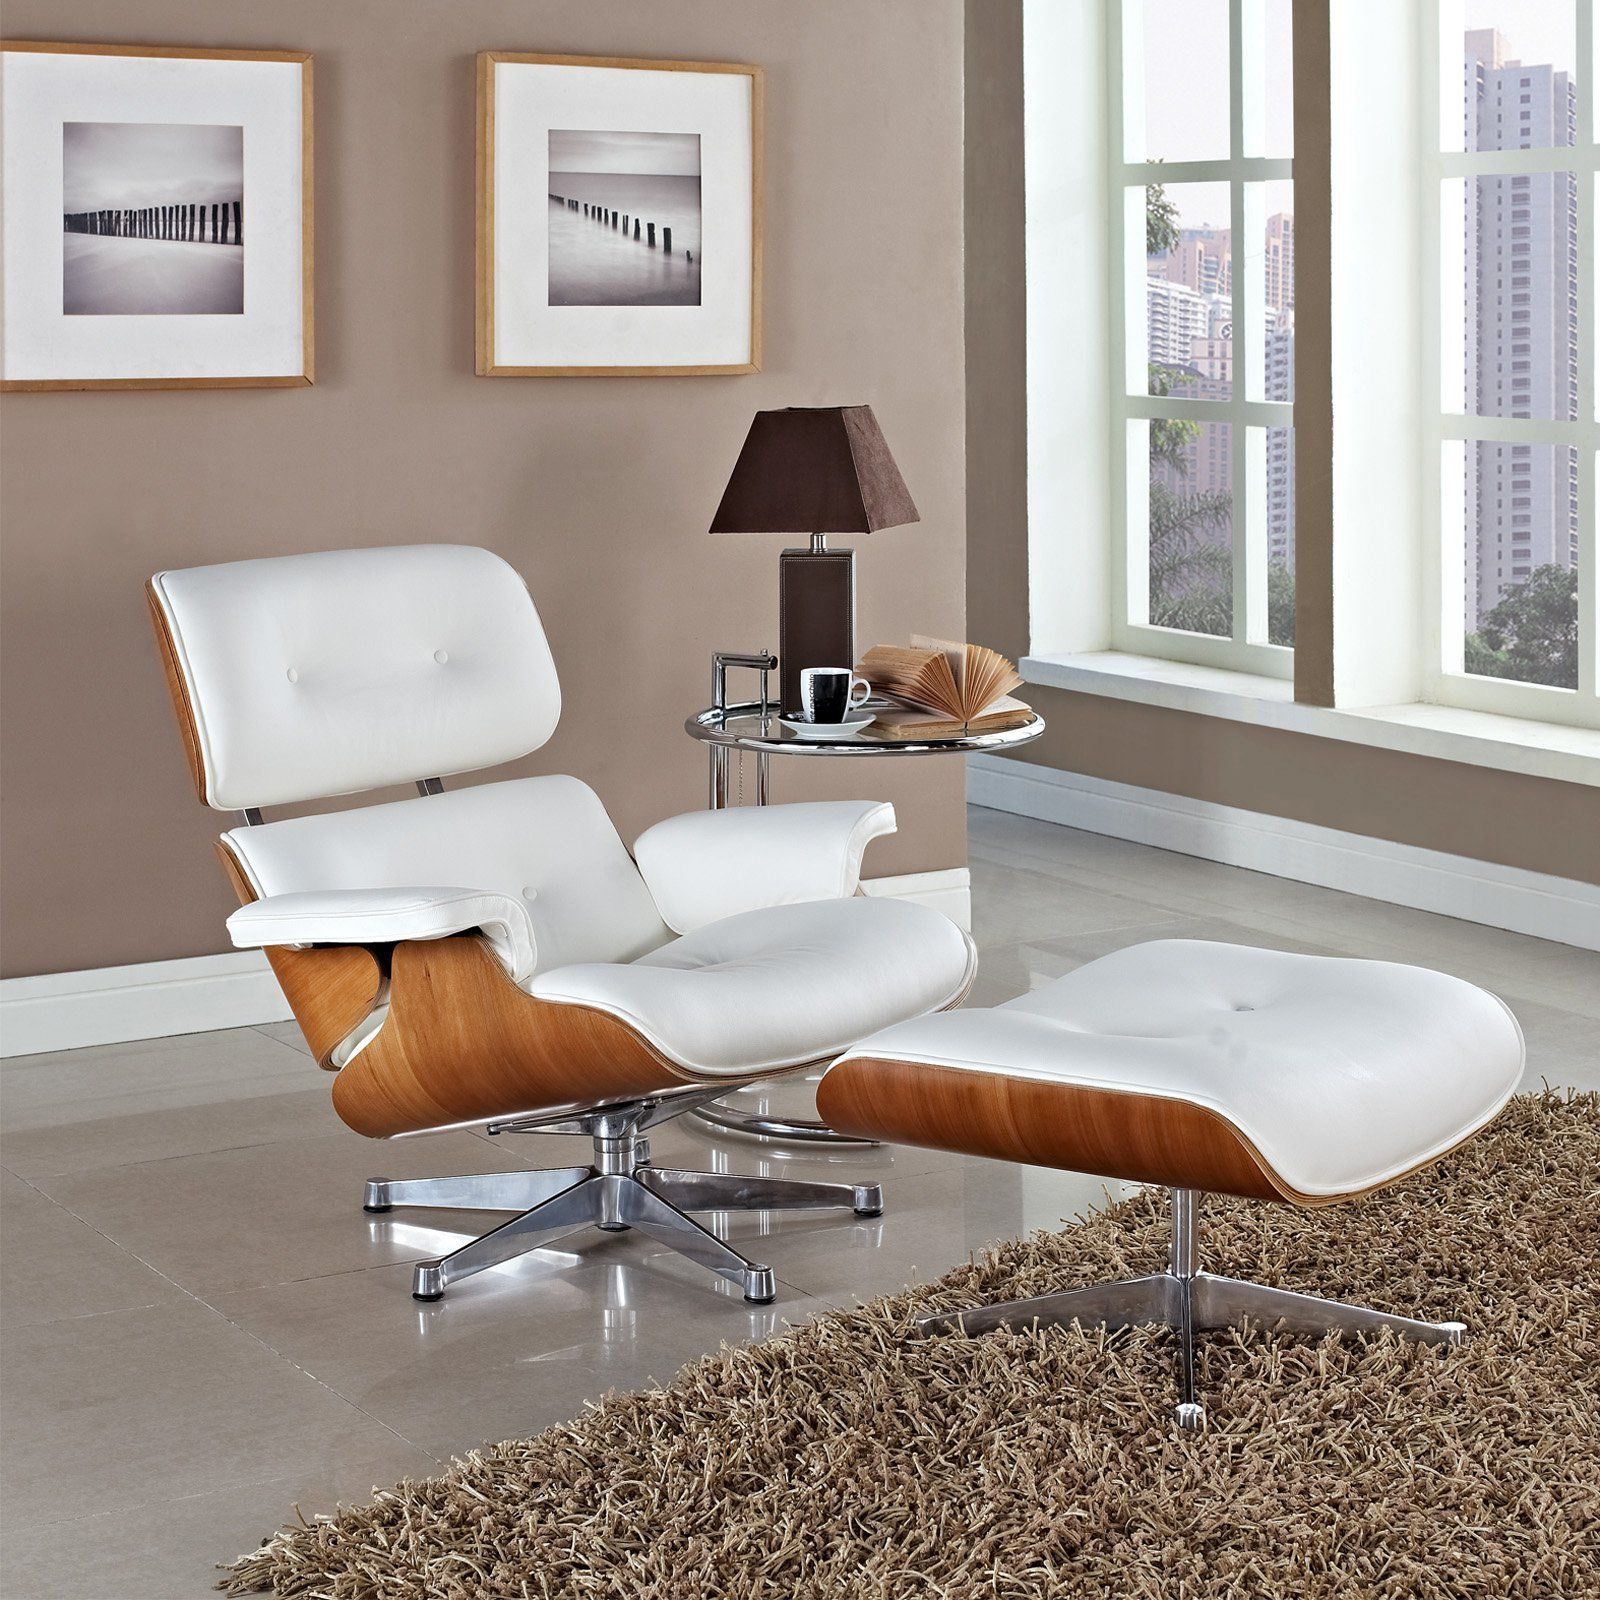 Modway Eaze Leather Lounge Chair White Natural www